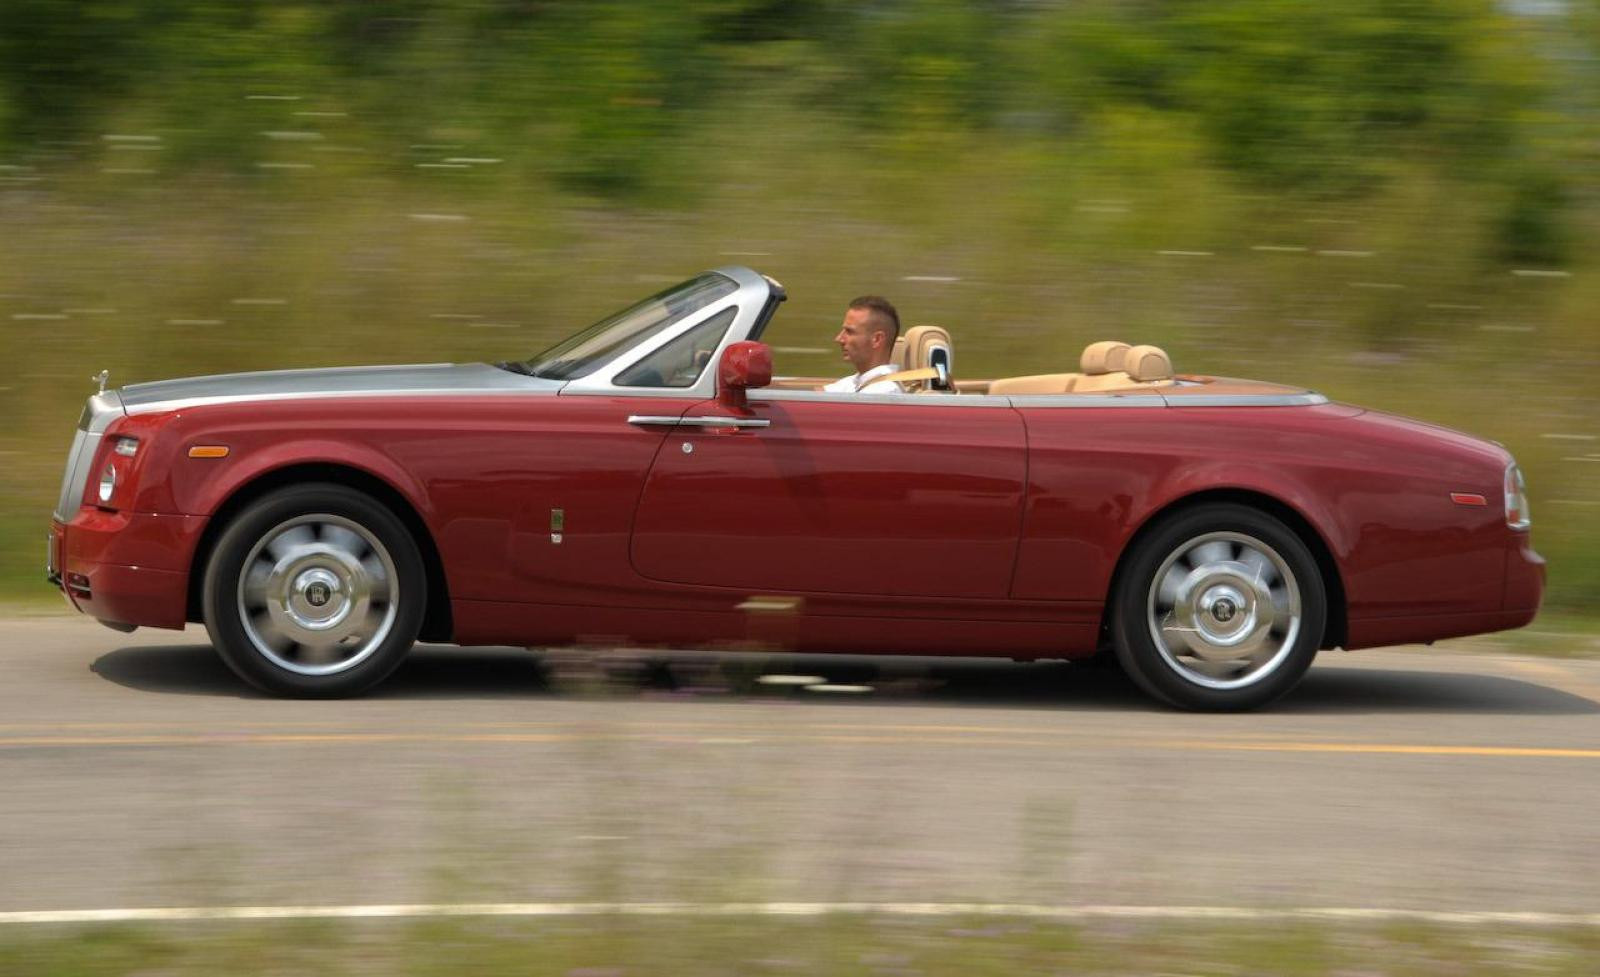 2014 rolls royce phantom drophead coupe information and photos zombiedrive. Black Bedroom Furniture Sets. Home Design Ideas